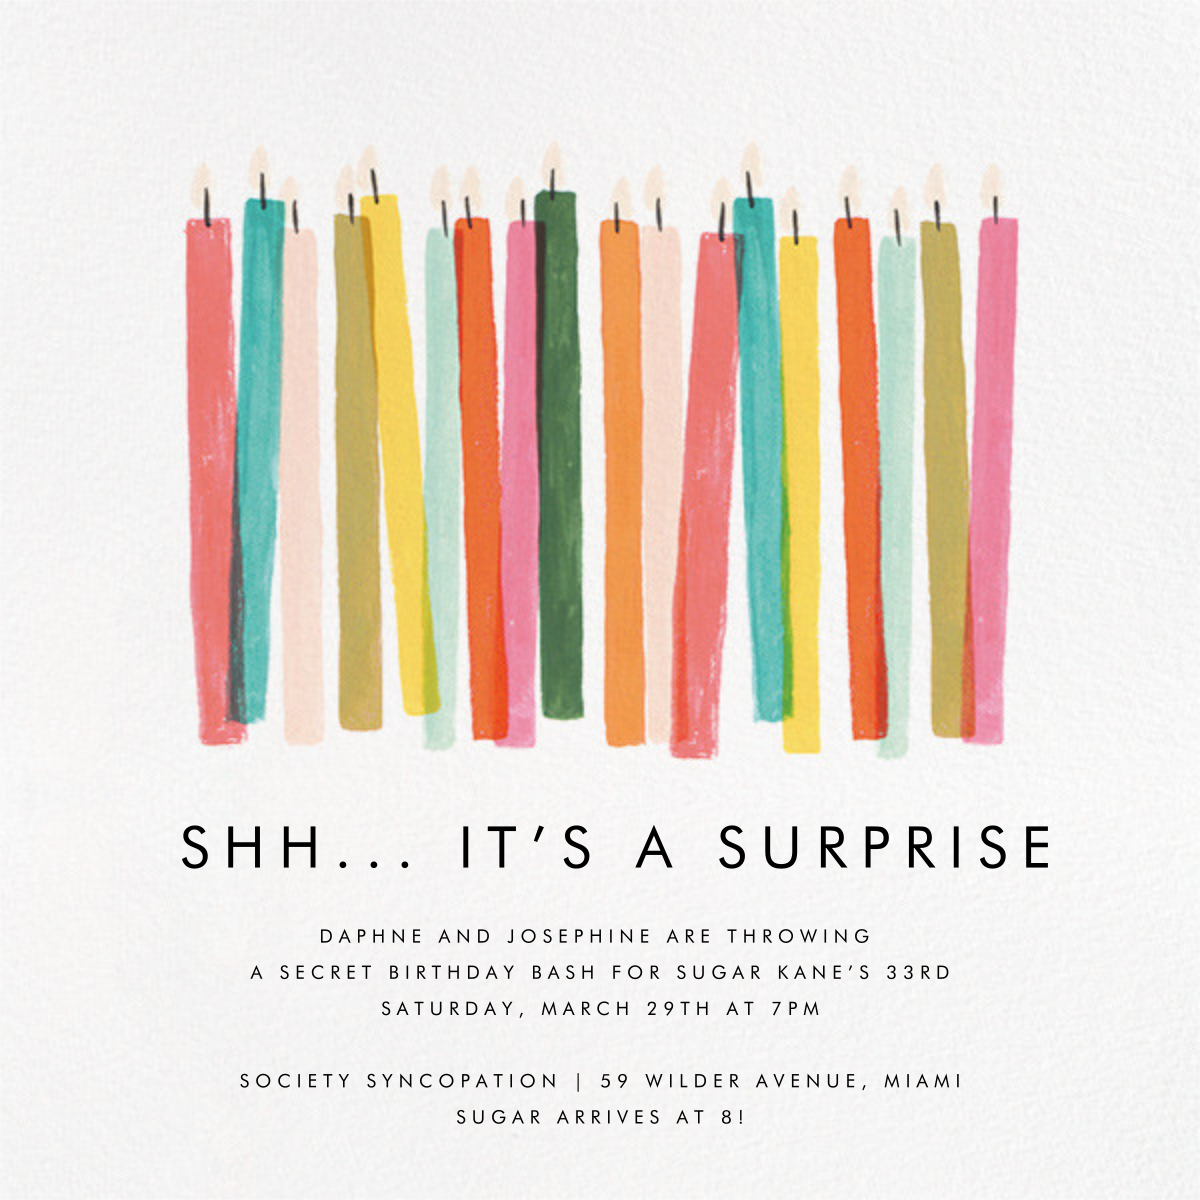 Candle Stand - Rifle Paper Co. - Adult birthday